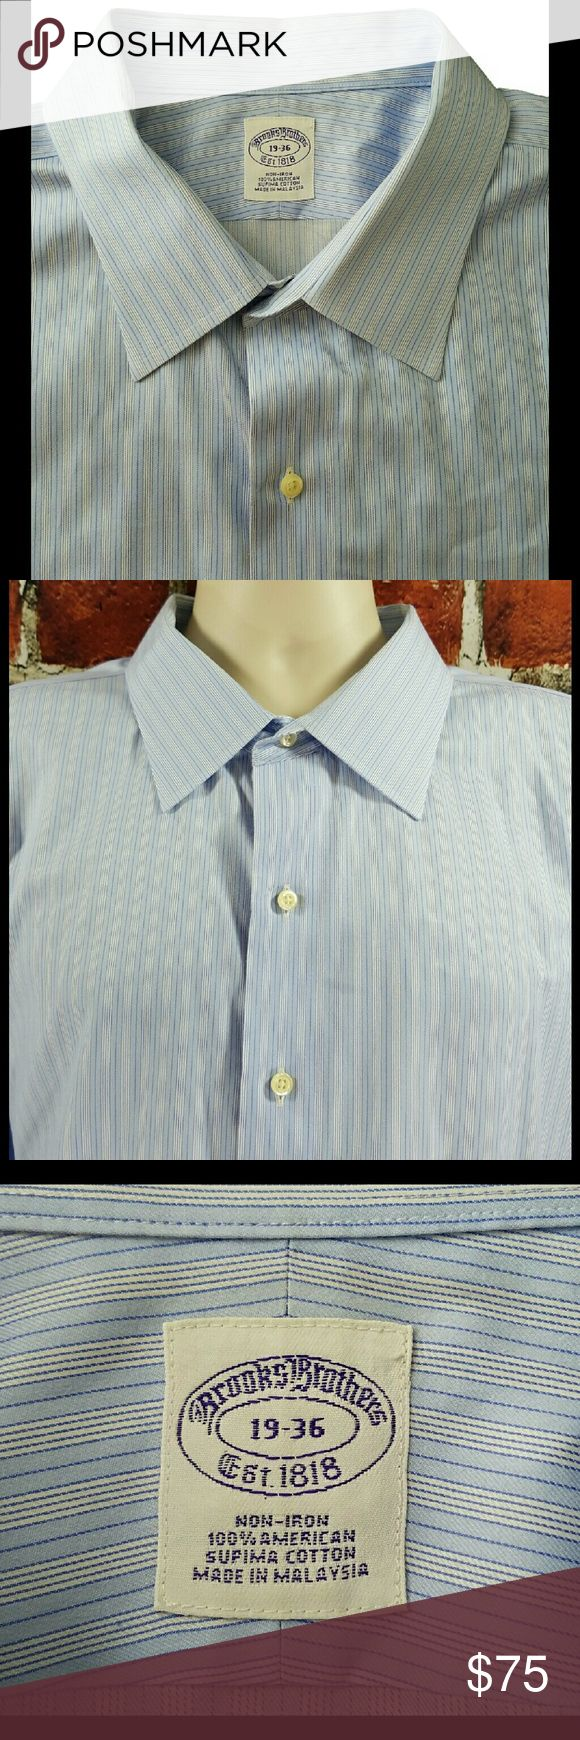 Brooks Brothers Big & Tall Dress Shirt 3XL 19-36 Brooks Brothers Non Iron Supima Cotton Blue Striped Dress Shirt Size: 3XL 19-36  About this item:  Excellent to Mint Condition All Supima Cotton Non-Iron Blue & White Striped  Size: 19-36 Across Chest: 30.5 Length: 36 Sleeve: 25 Brooks Brothers Shirts Dress Shirts